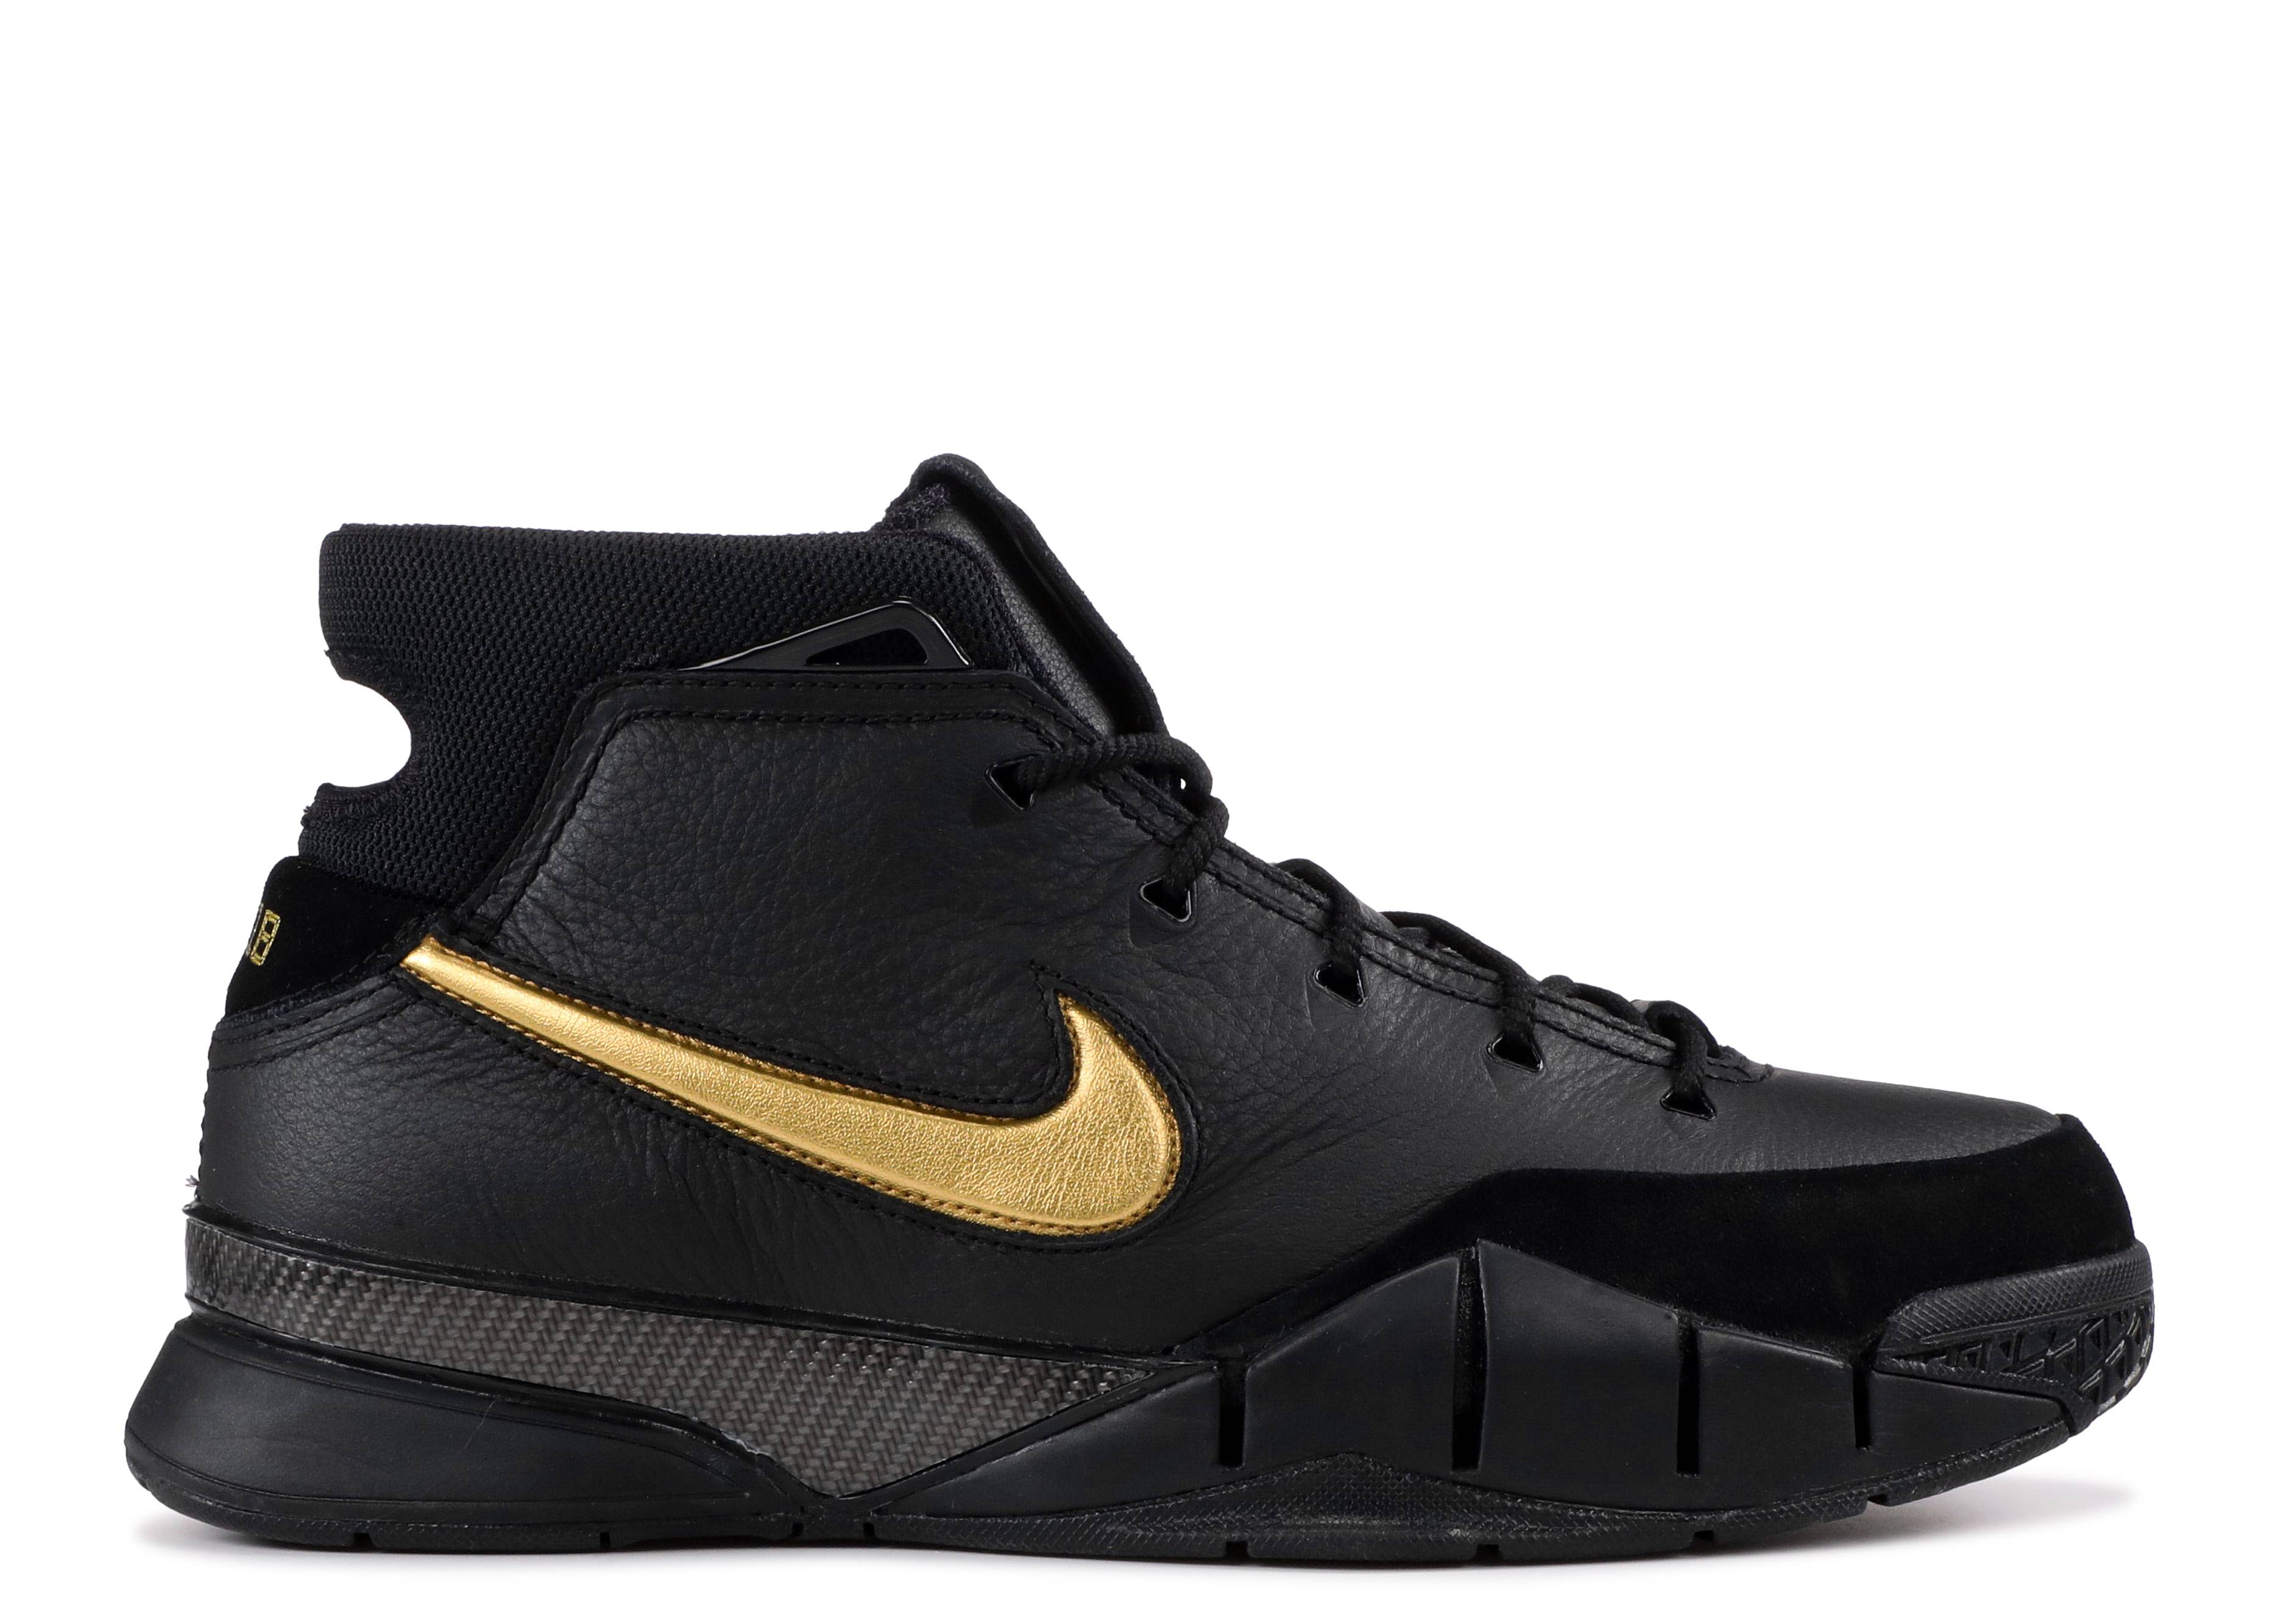 Men's Nike Zoom Kobe 1 Protro Mamba Day Black Gold Size 11 Basketball Shoes